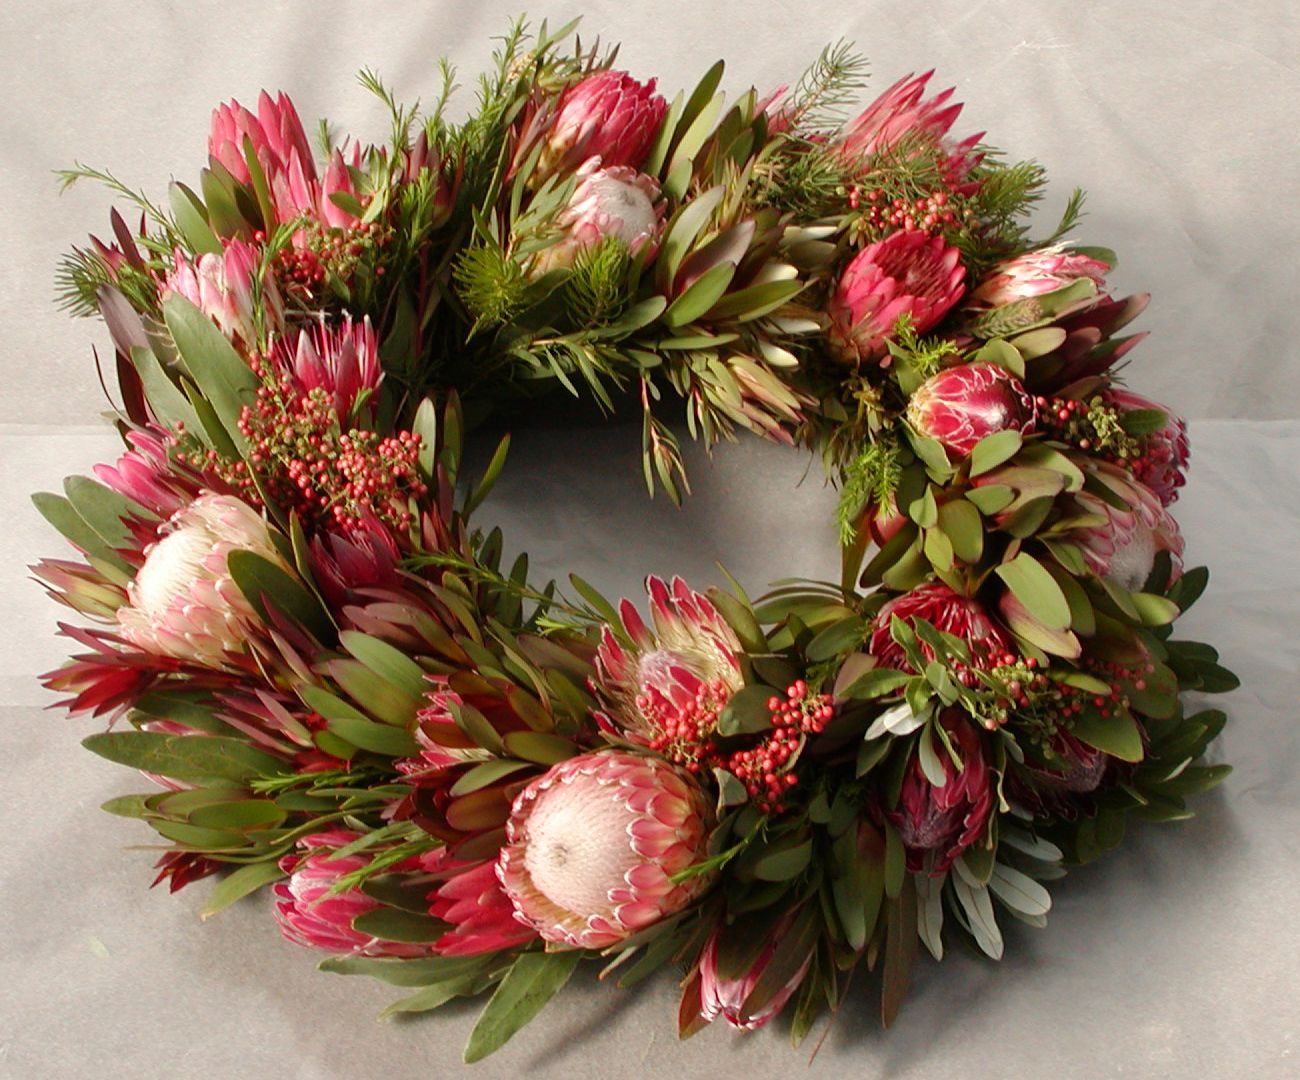 How to make a fresh christmas wreath - Christmas Wreaths 008 See More Beautiful Diy Chrsitmas Wreath Ideas At Diychristmasdecorations Net